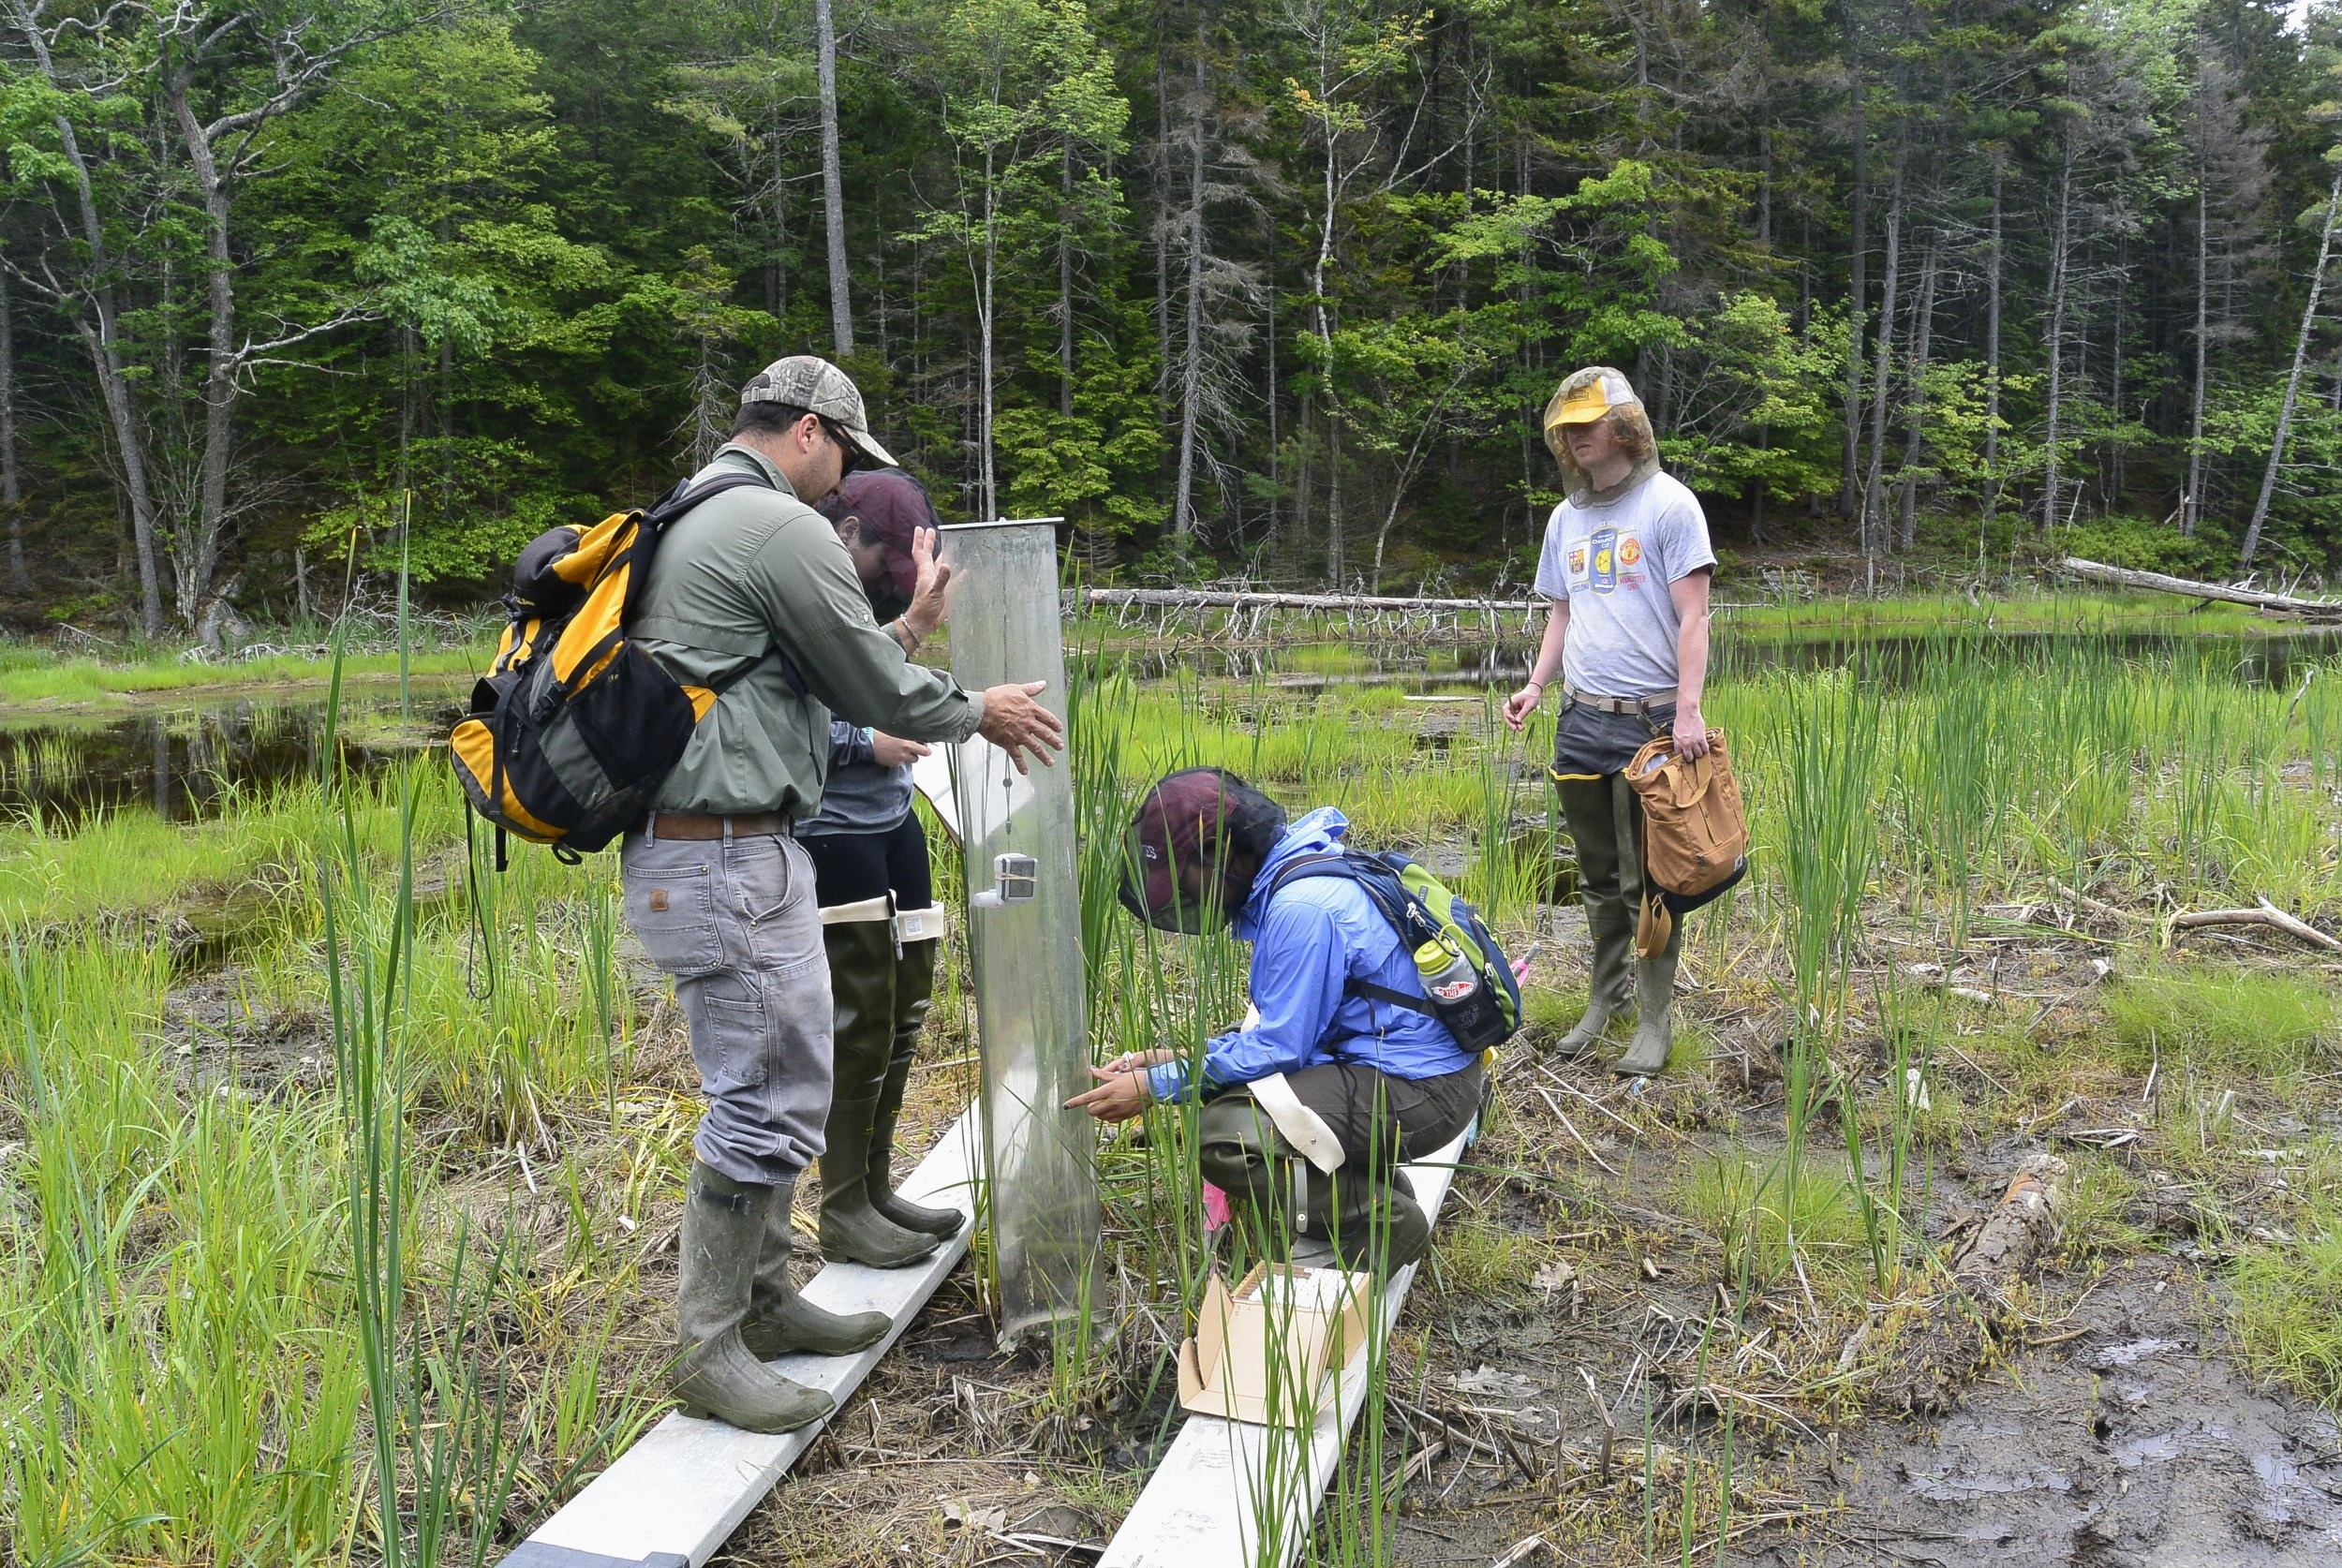 The Bates team carefully conducts their procedure in the marsh.